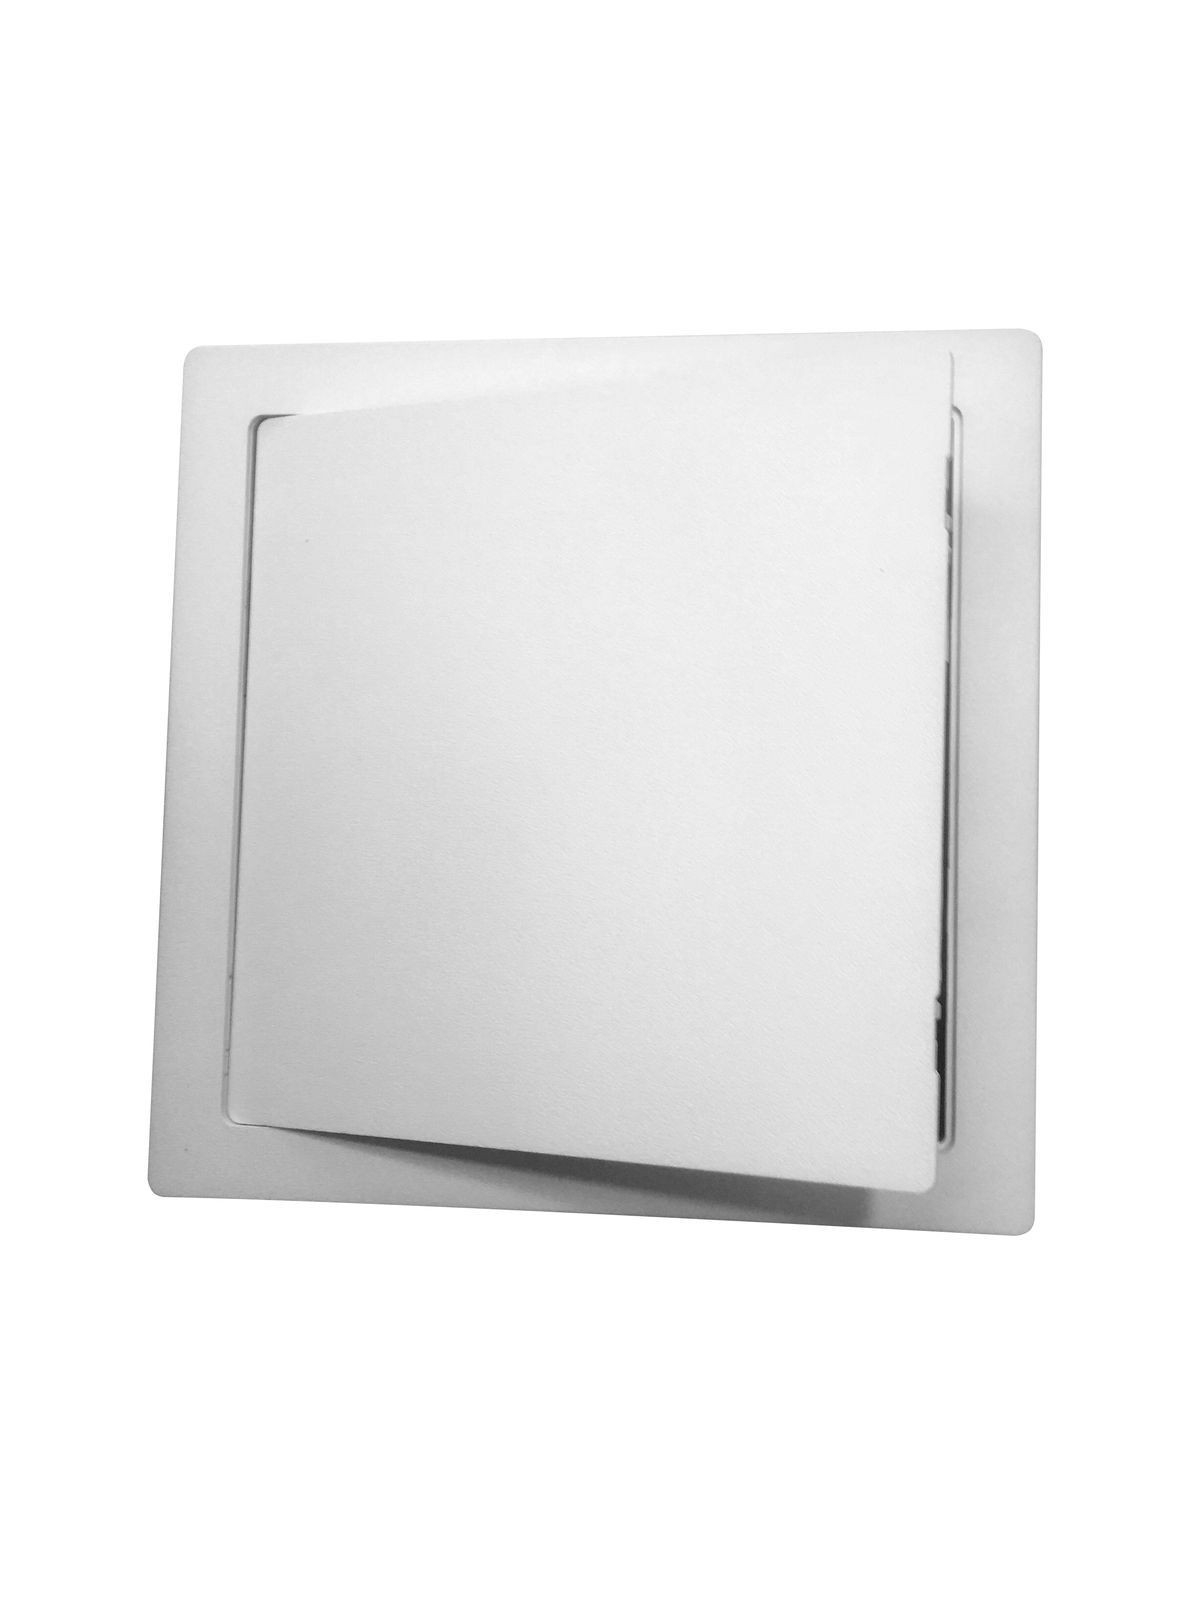 White Plastic Access Panel Inspection Hatch Revision Door All Sizes - 100mm x 150mm (4x6